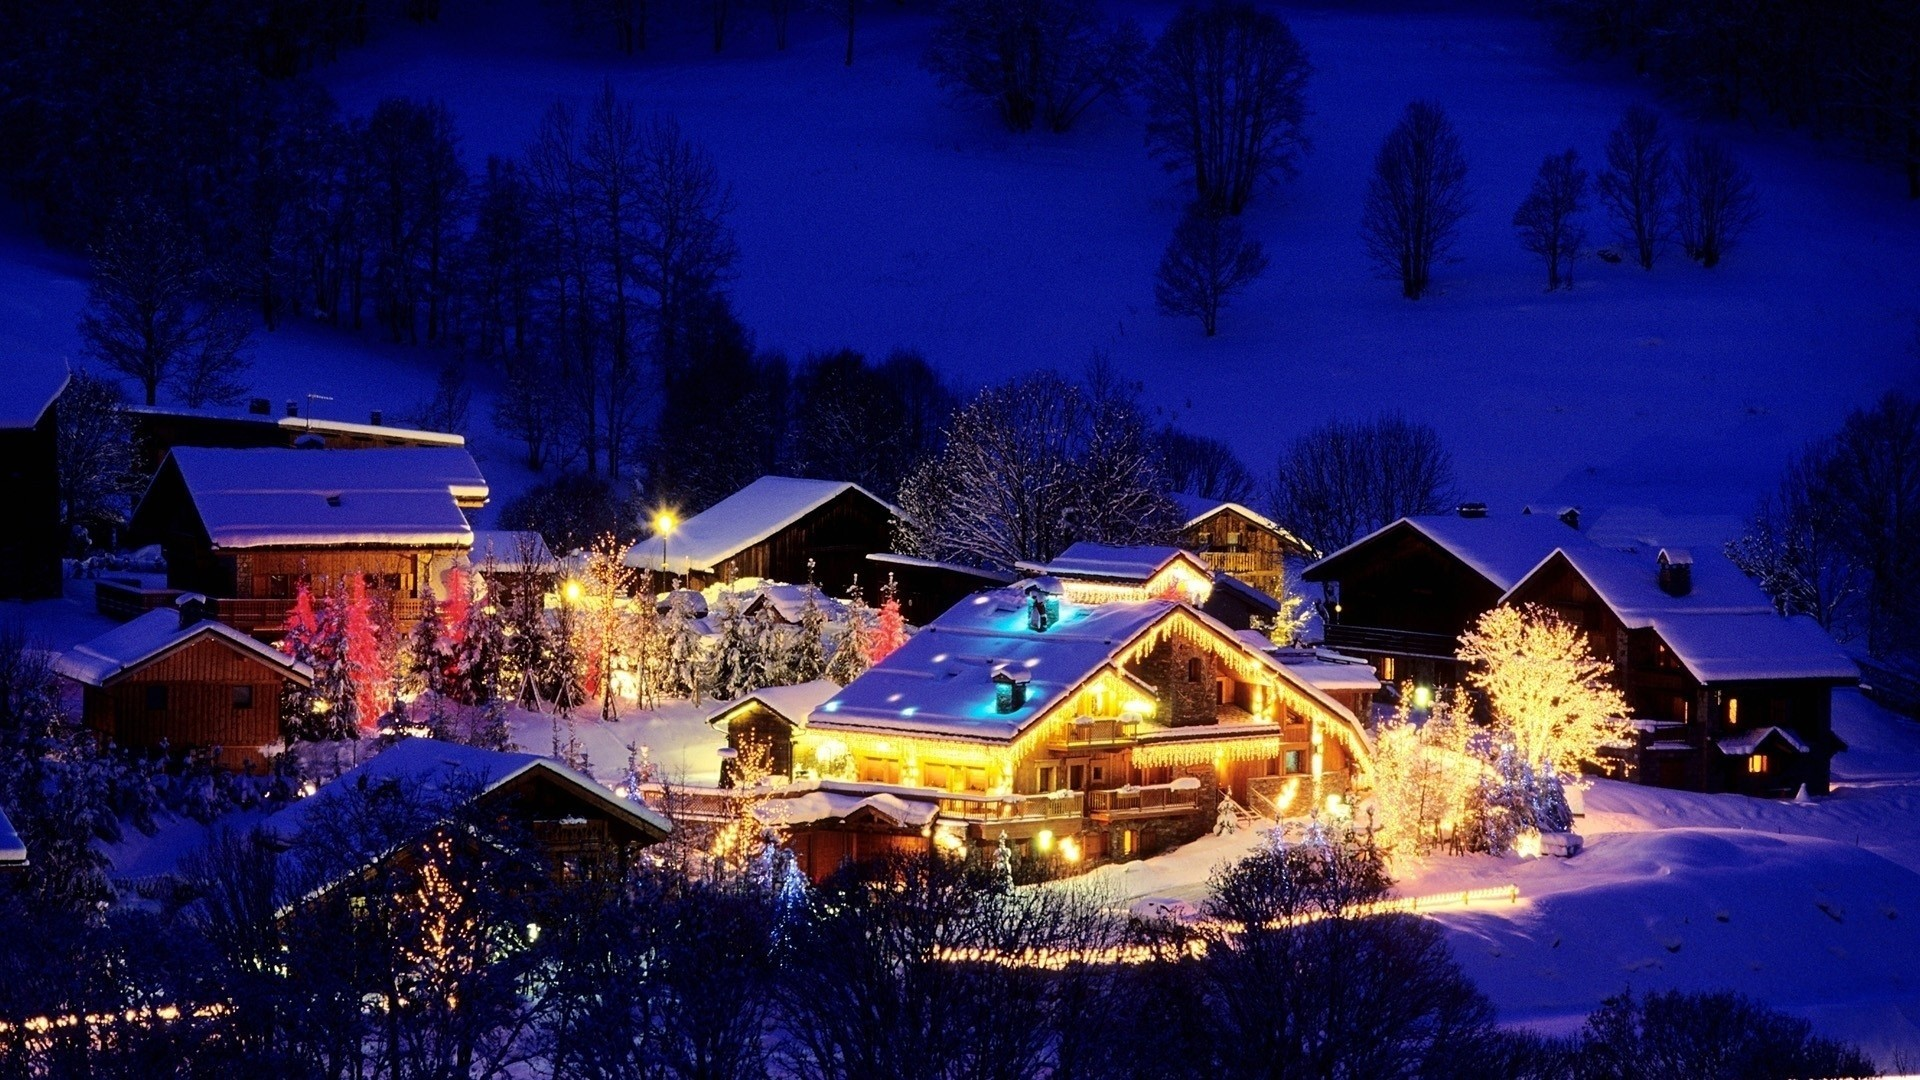 1920x1080 Christmas Snow Scene Wallpaper ·① throughout Christmas Cabin And Tree In  Deep Snow Christmas Snow